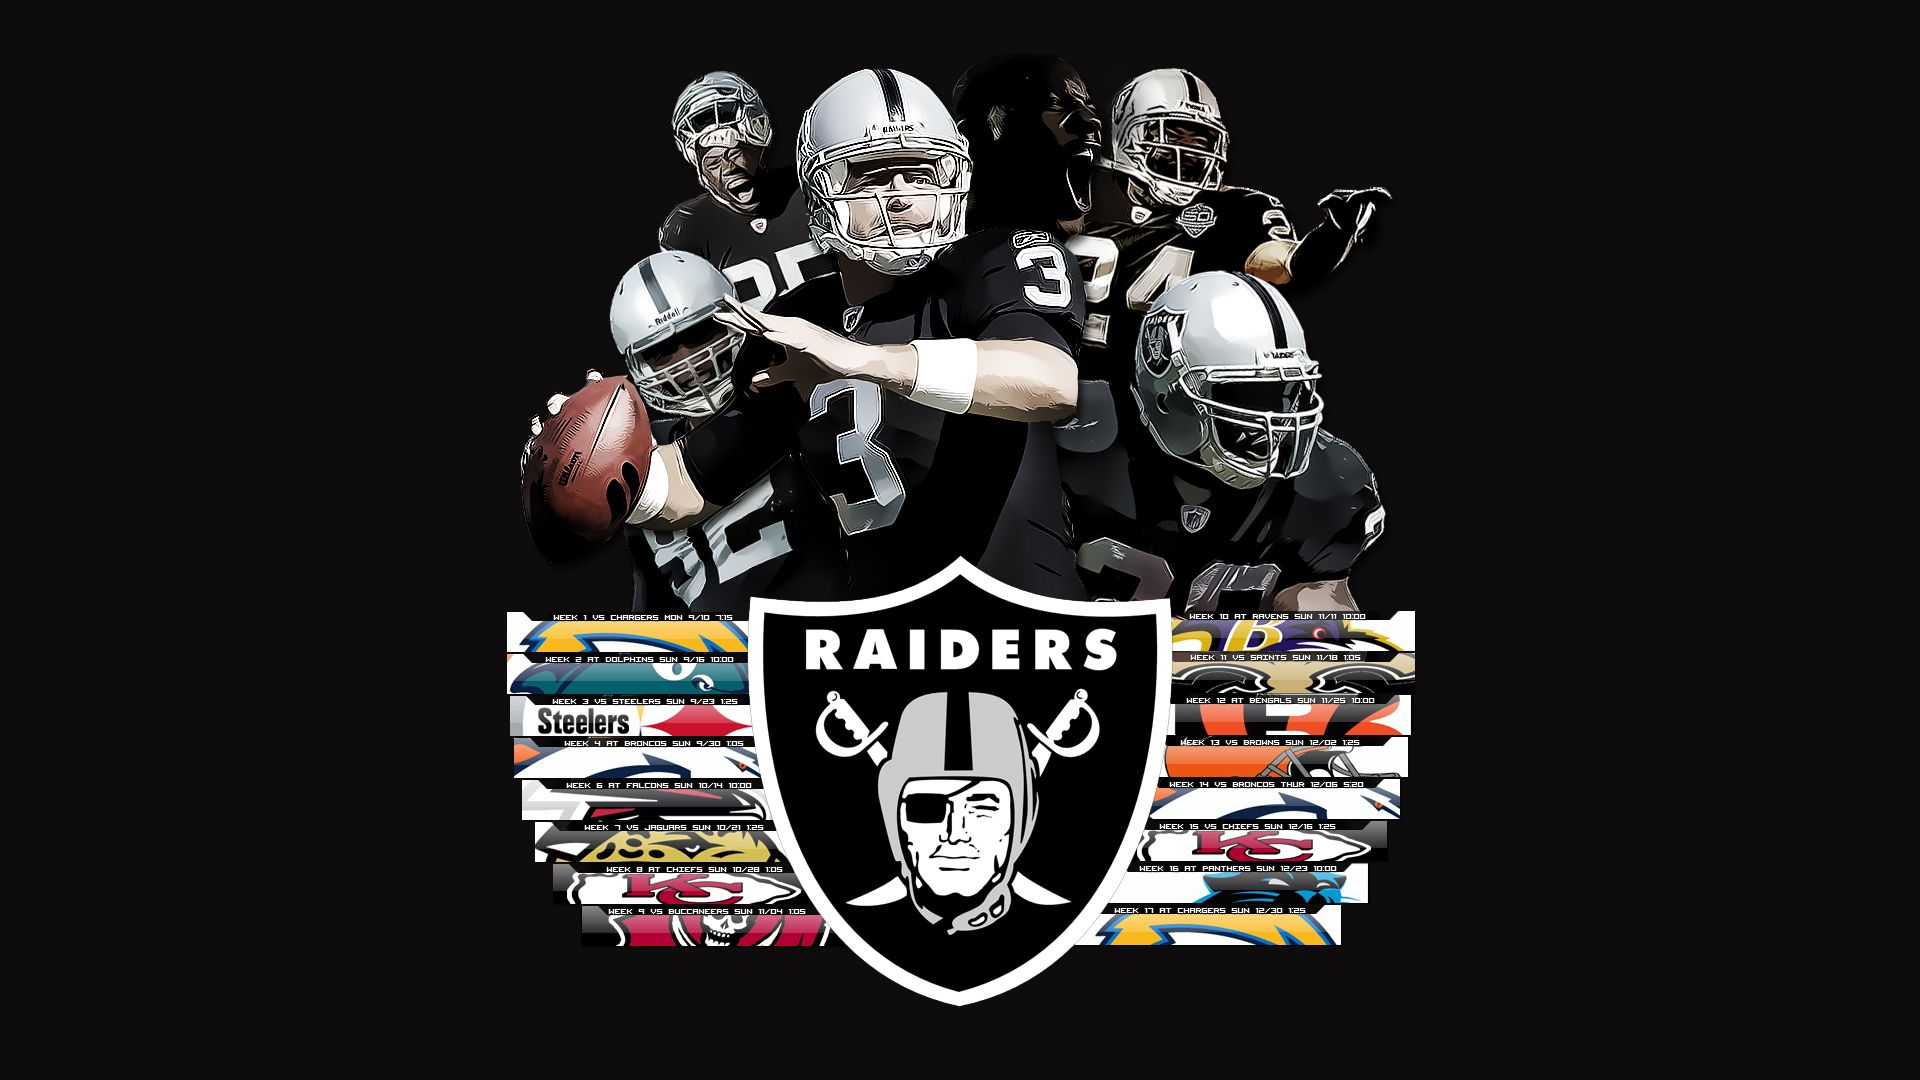 Raiders backgrounds wallpapers hd wallpapers pinterest raiders raiders backgrounds wallpapers voltagebd Image collections